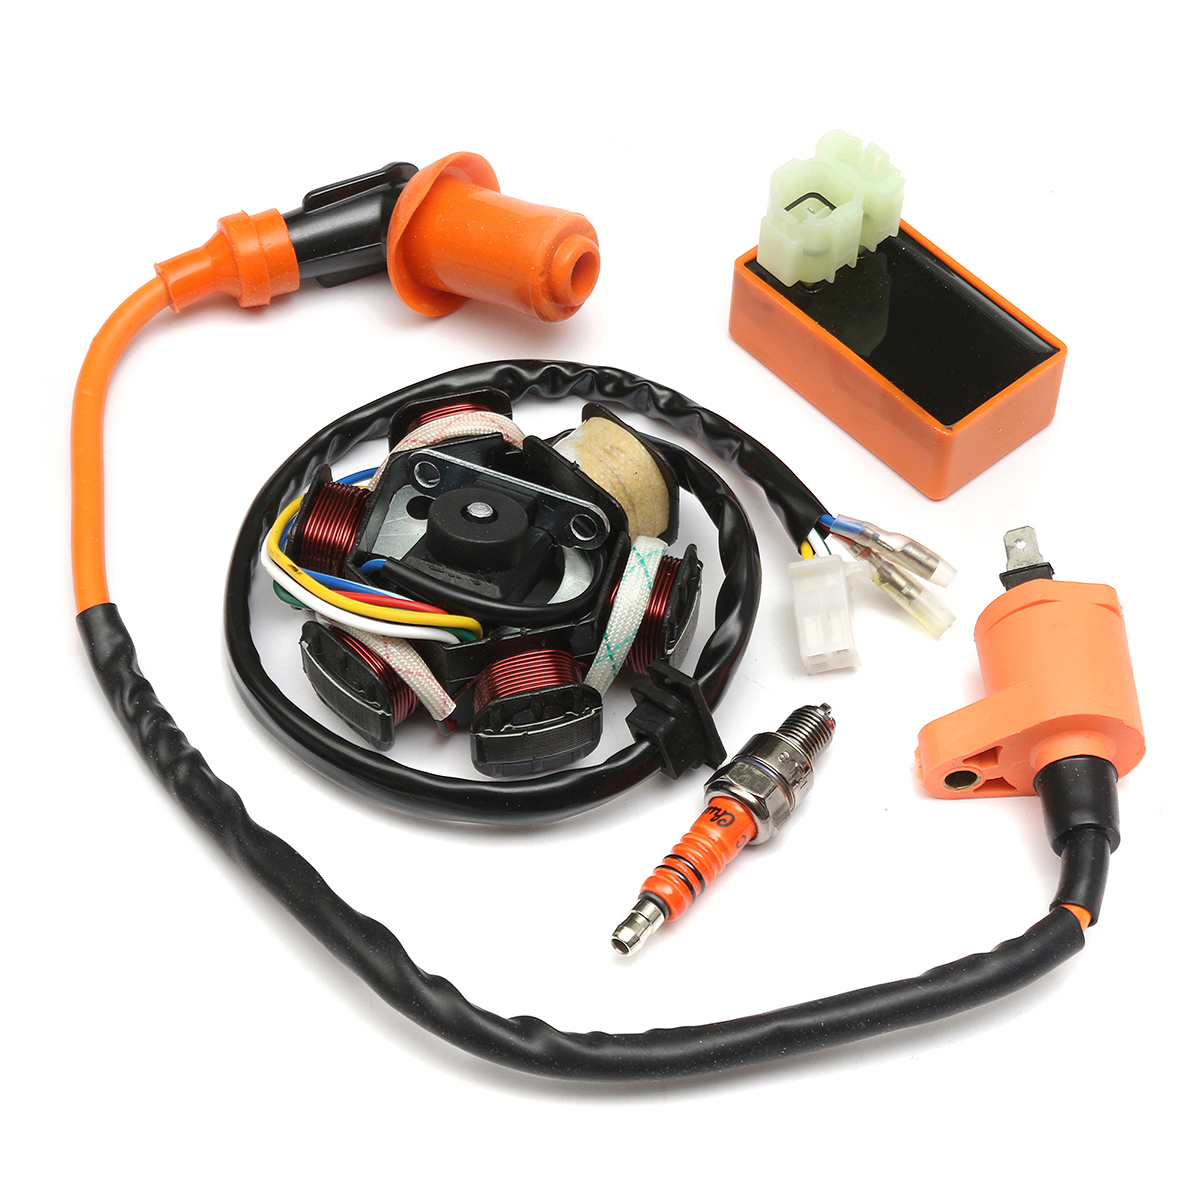 hight resolution of 49cc 50cc gy6 scooter racing ignition coil cdi spark plug moped magneto stator